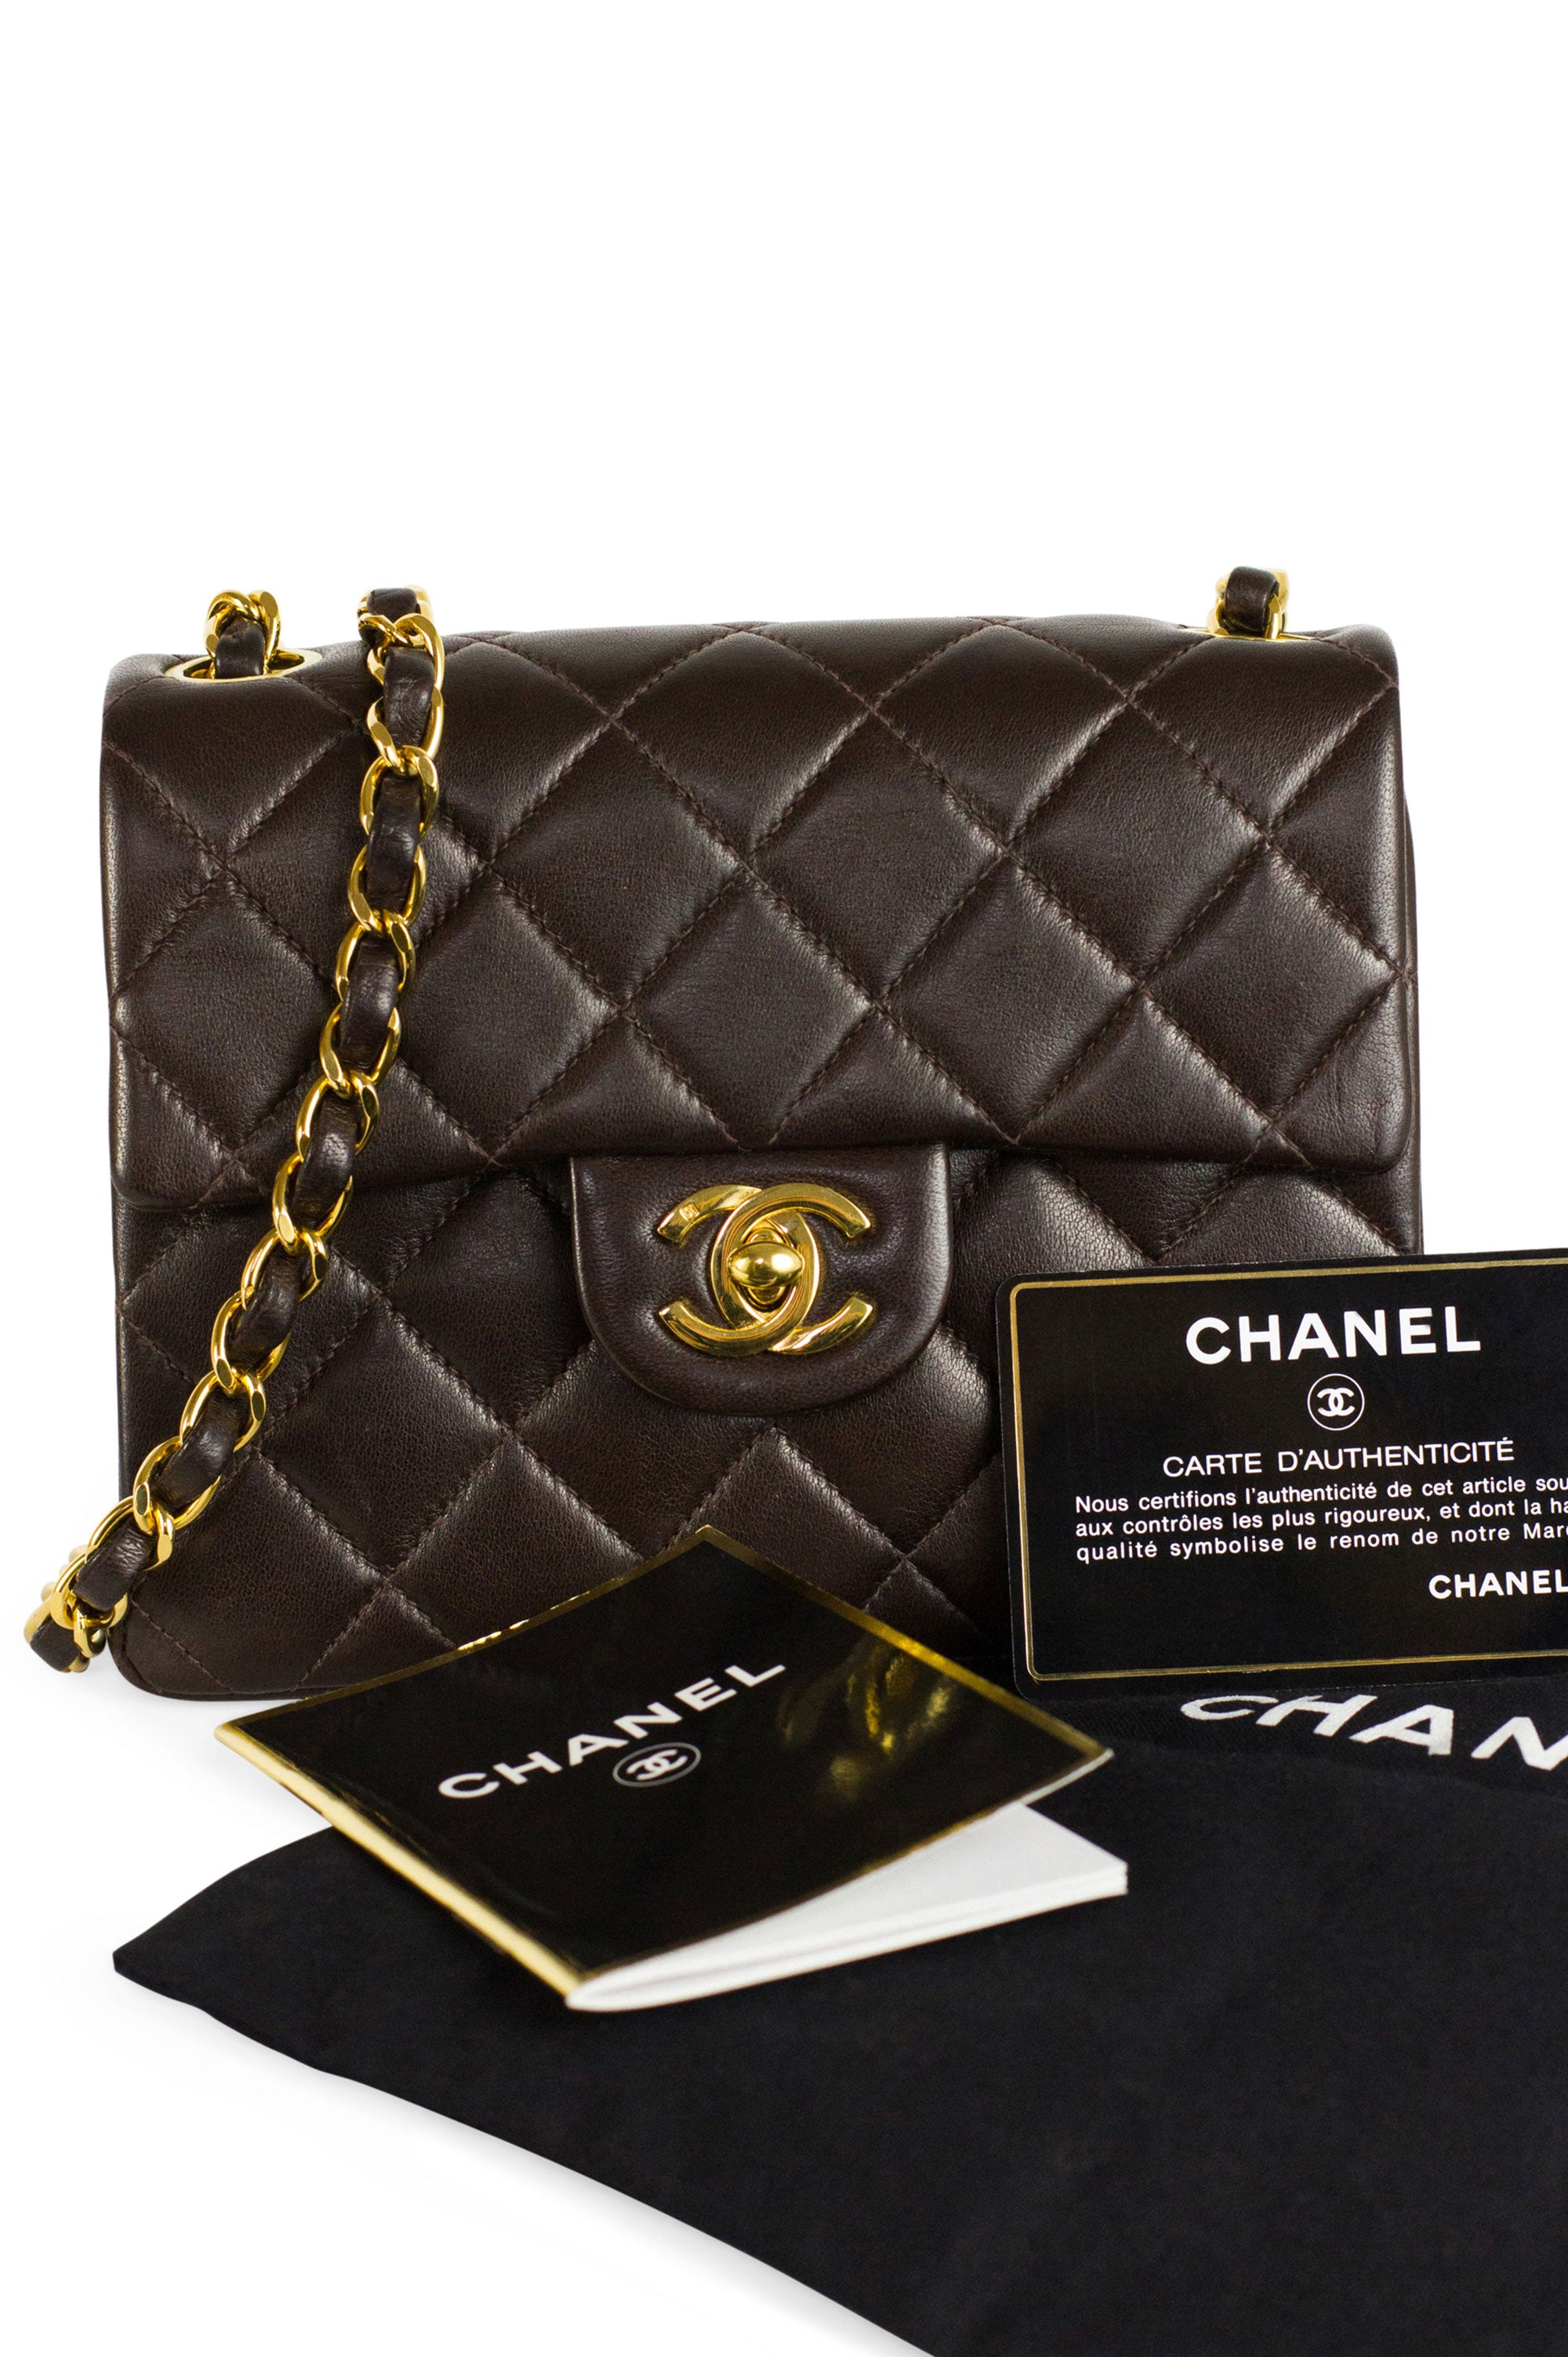 Chanel Mini Flap Bag Chocolat Brown 24k Gold Chain Frontansicht Dustbag Bucklet Karte